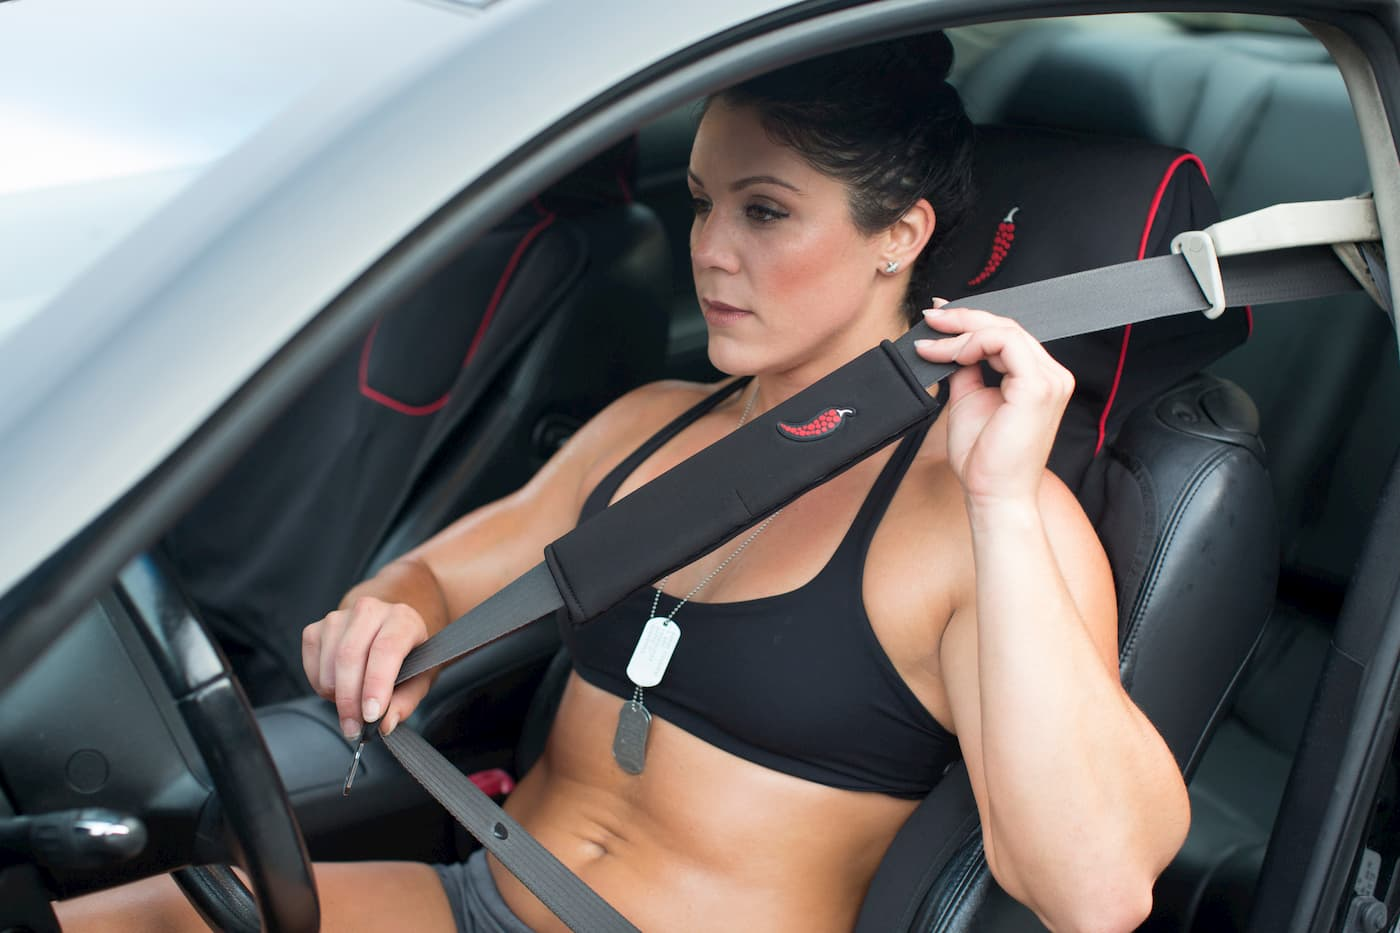 anti-sweat car seat cover and seat belt cover - kim lawrance athlete